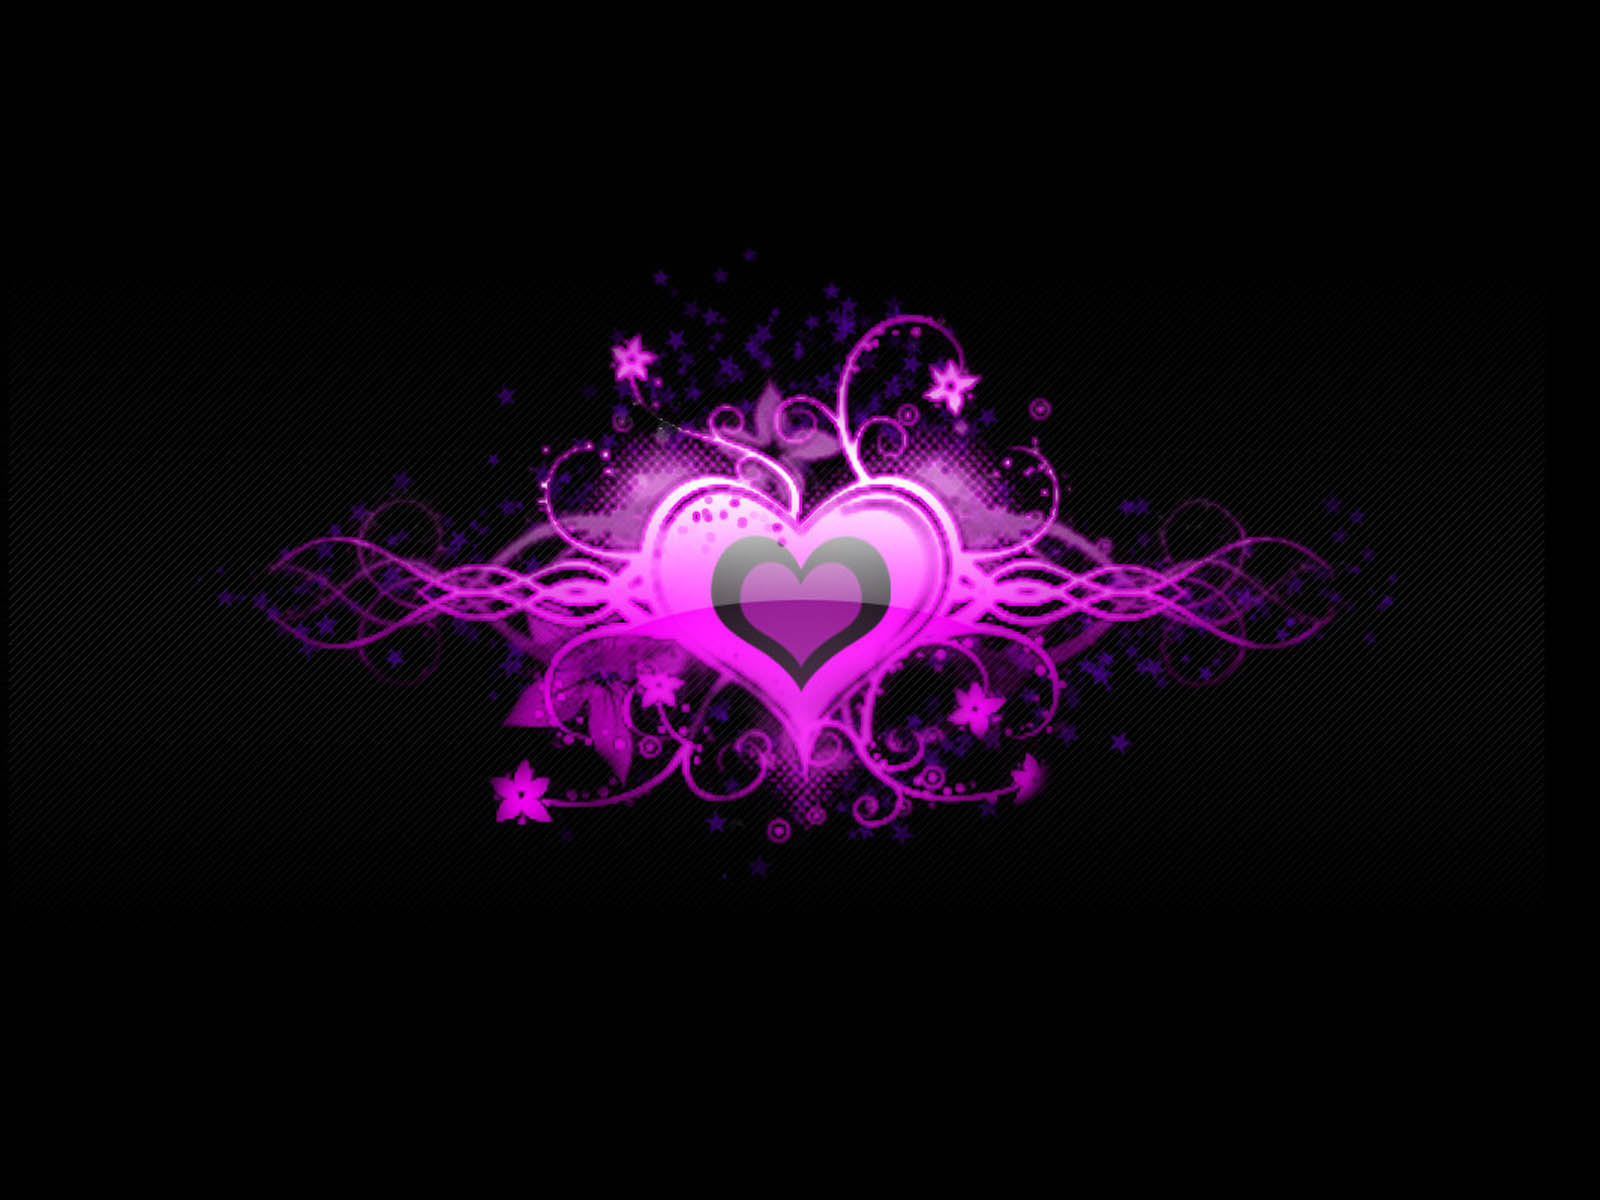 Purple And Black Hearts Wallpaper: Wallpapers: Love Heart Wallpapers